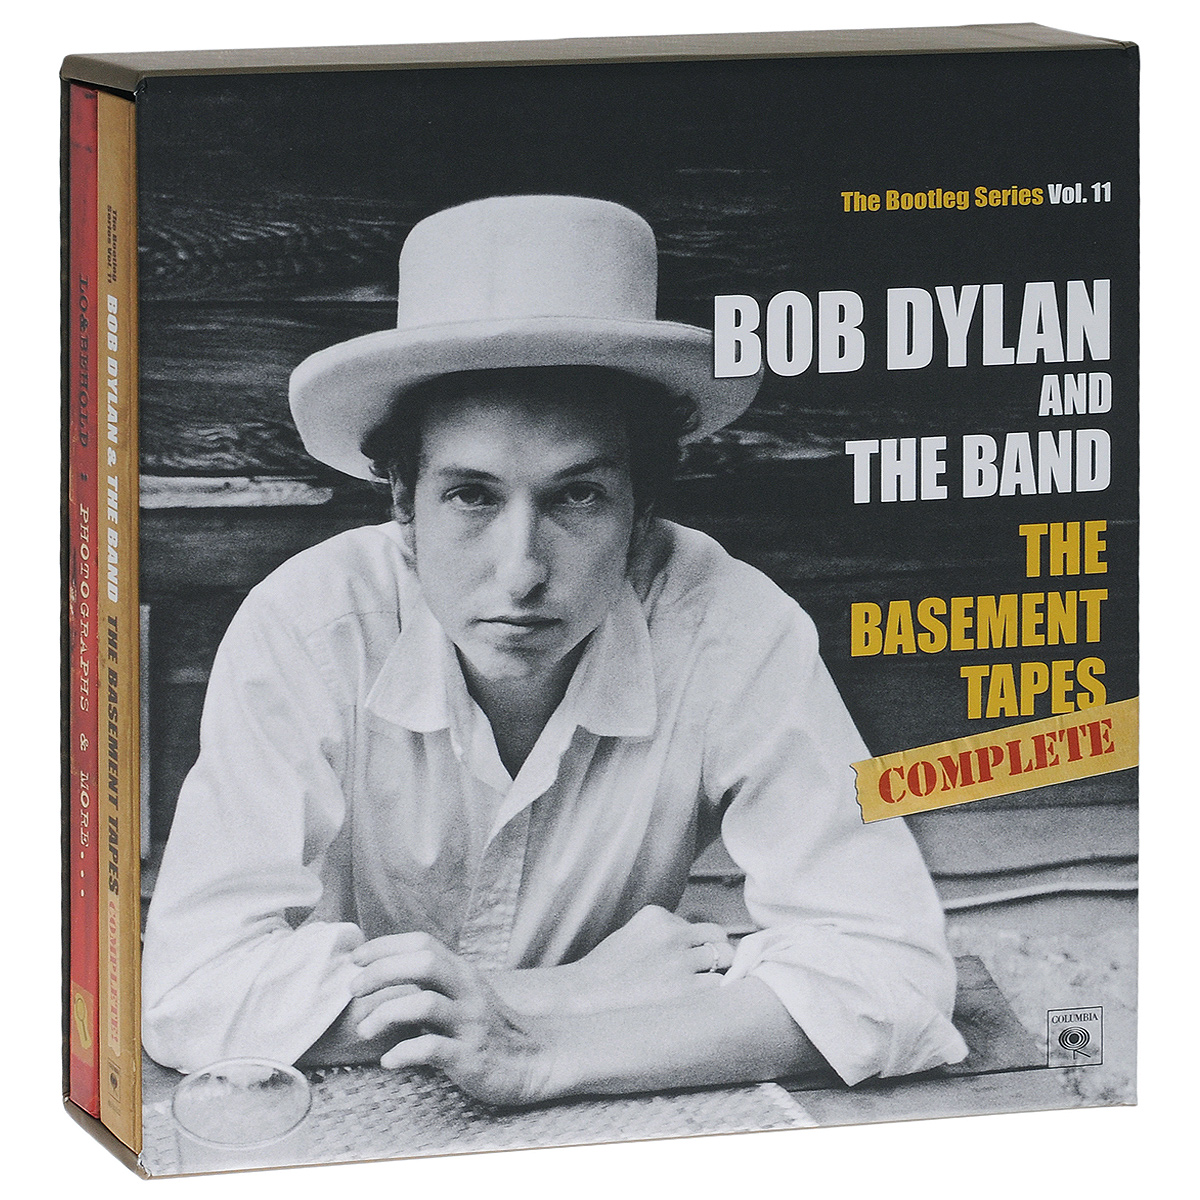 Bob Dylan And The Band Bob Dylan and The Band. The Bootleg Series Vol. 11: The Basement Tapes Complete. Limited Deluxe Edition (6 CD) the who the who quadrophenia super deluxe limited edition 4 cd dvd lp